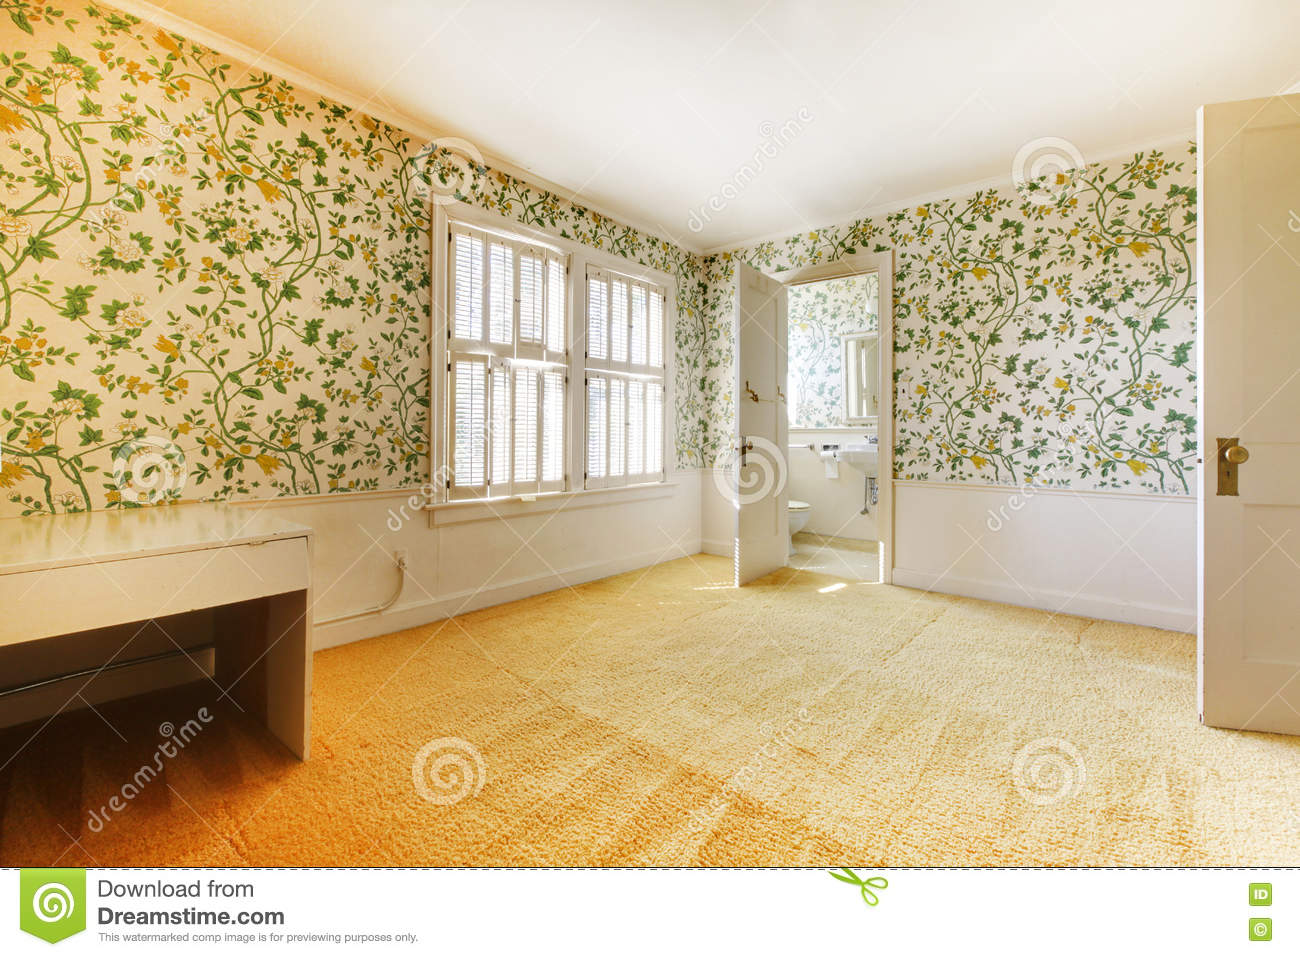 Adorable light bedroom with floral patterned wall paper for Floral pattern wall to wall carpet